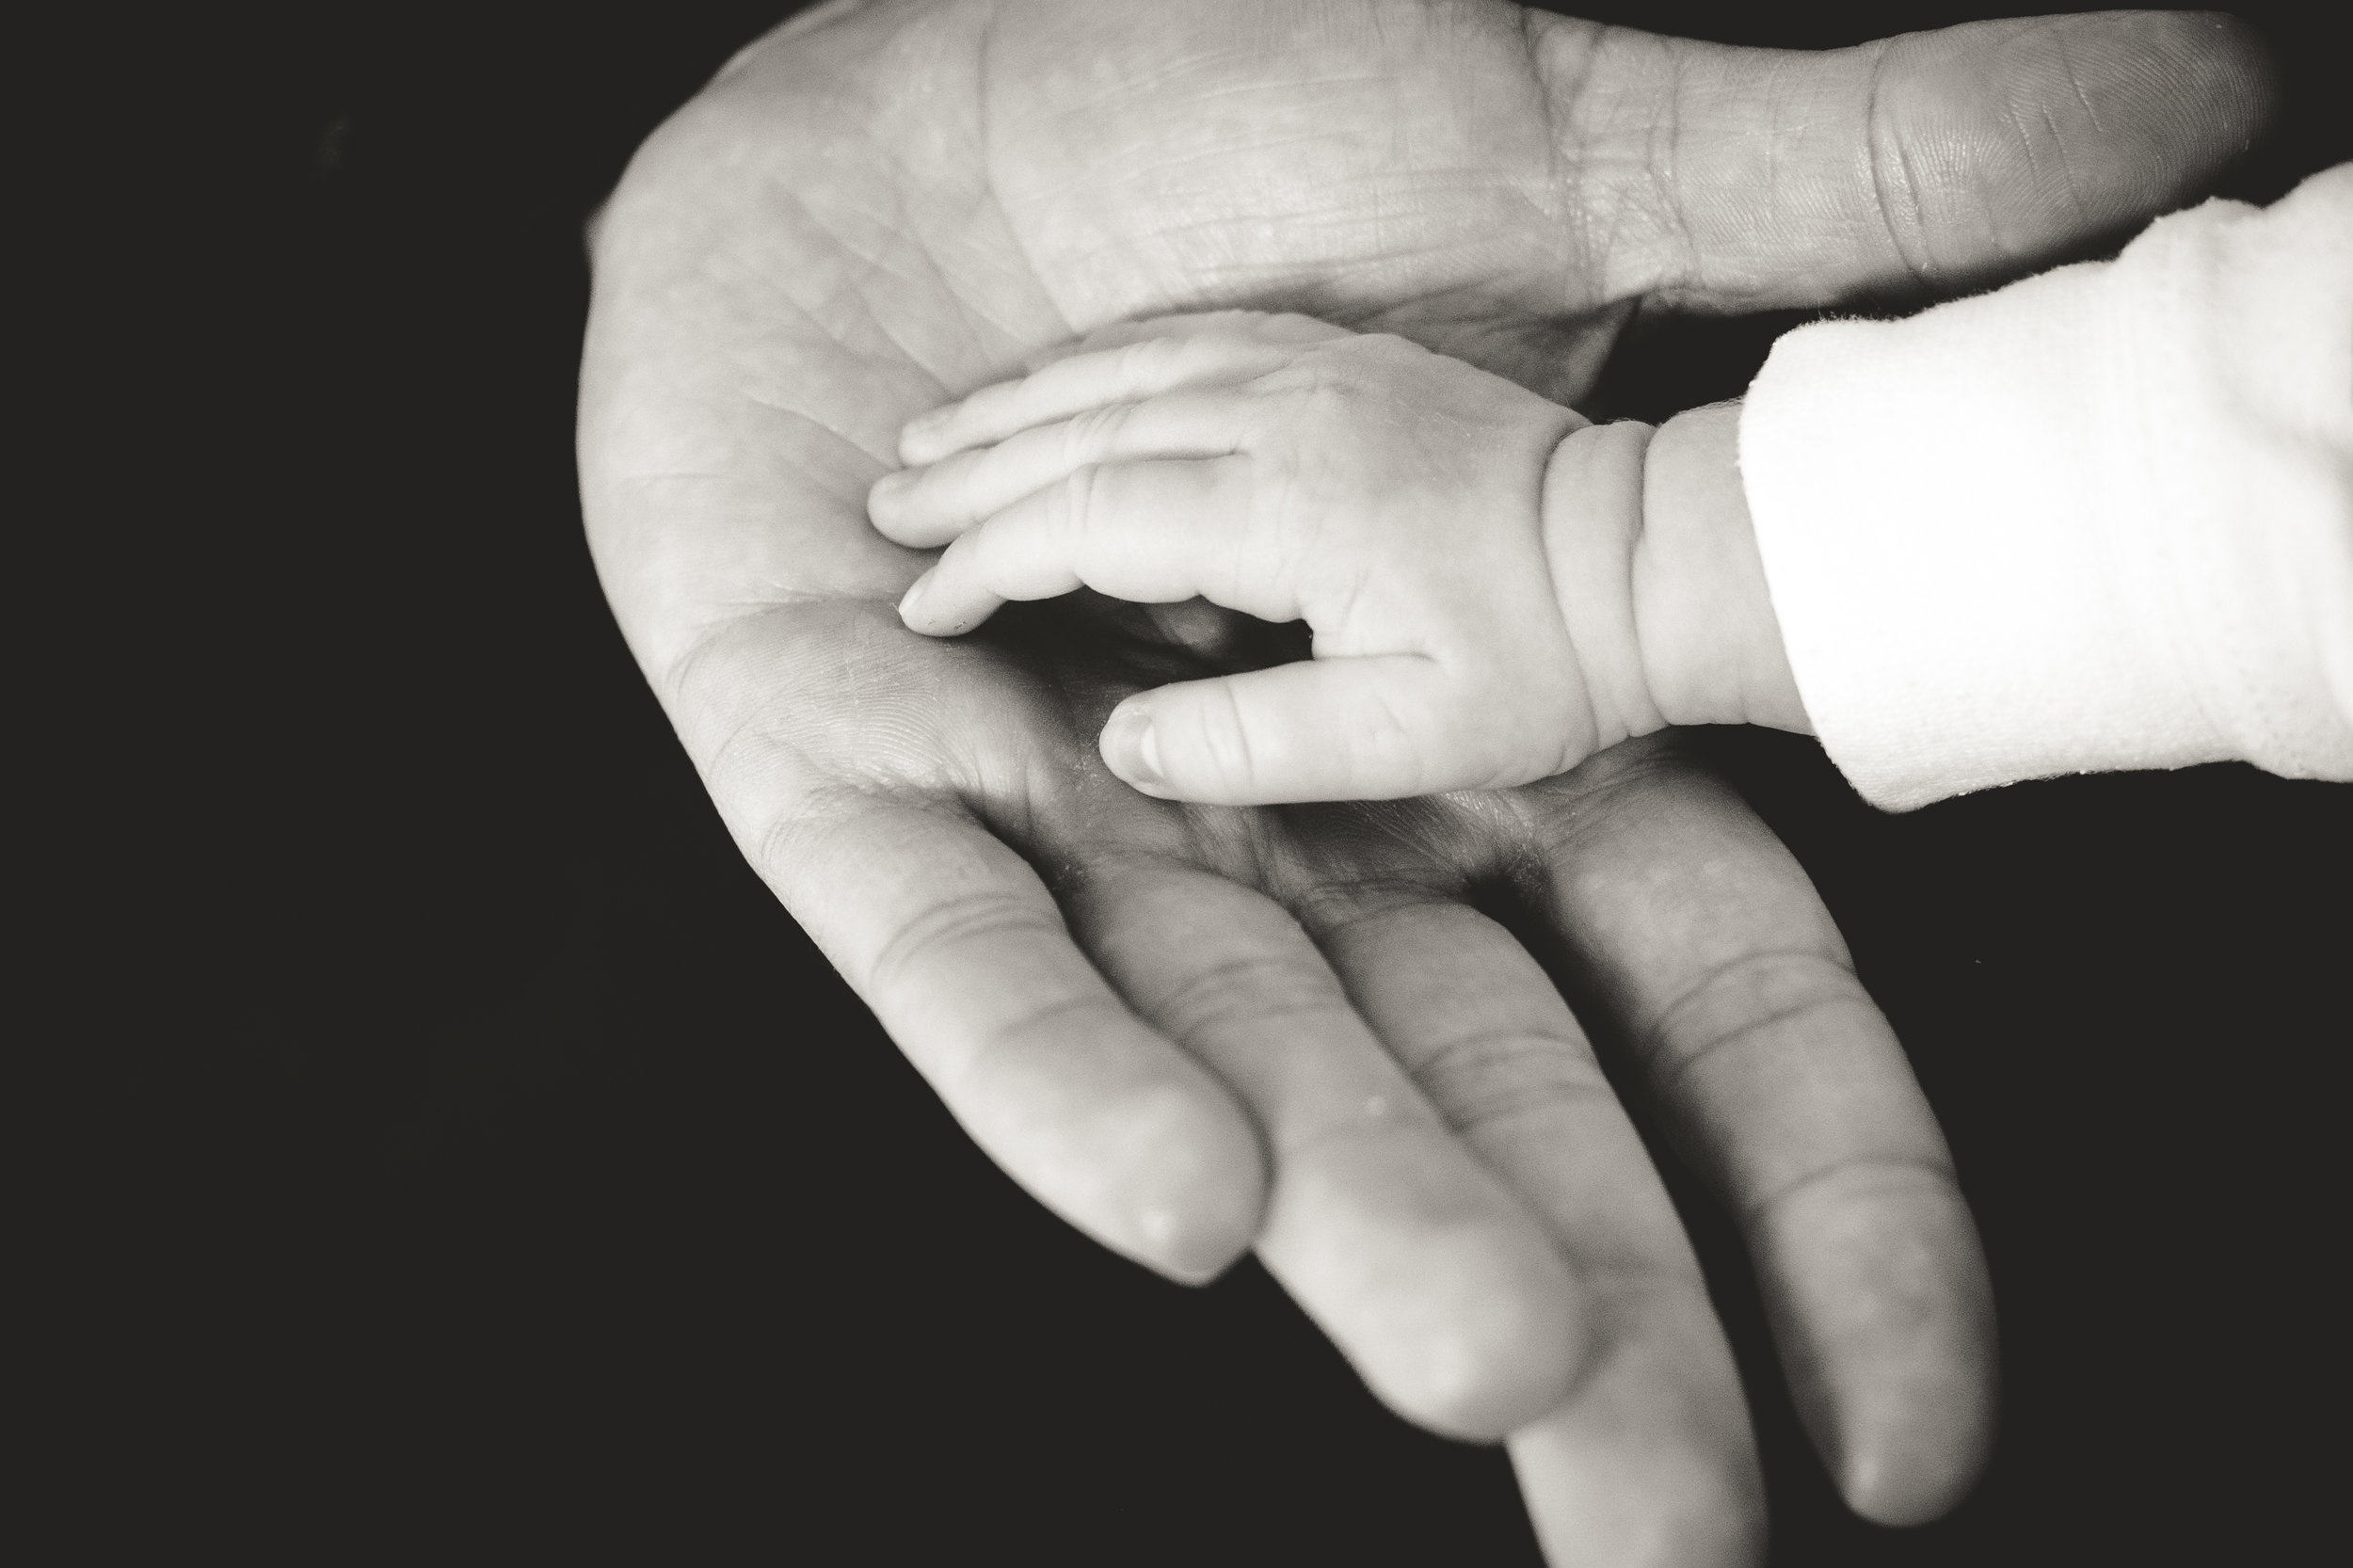 Adult hand and a baby hand